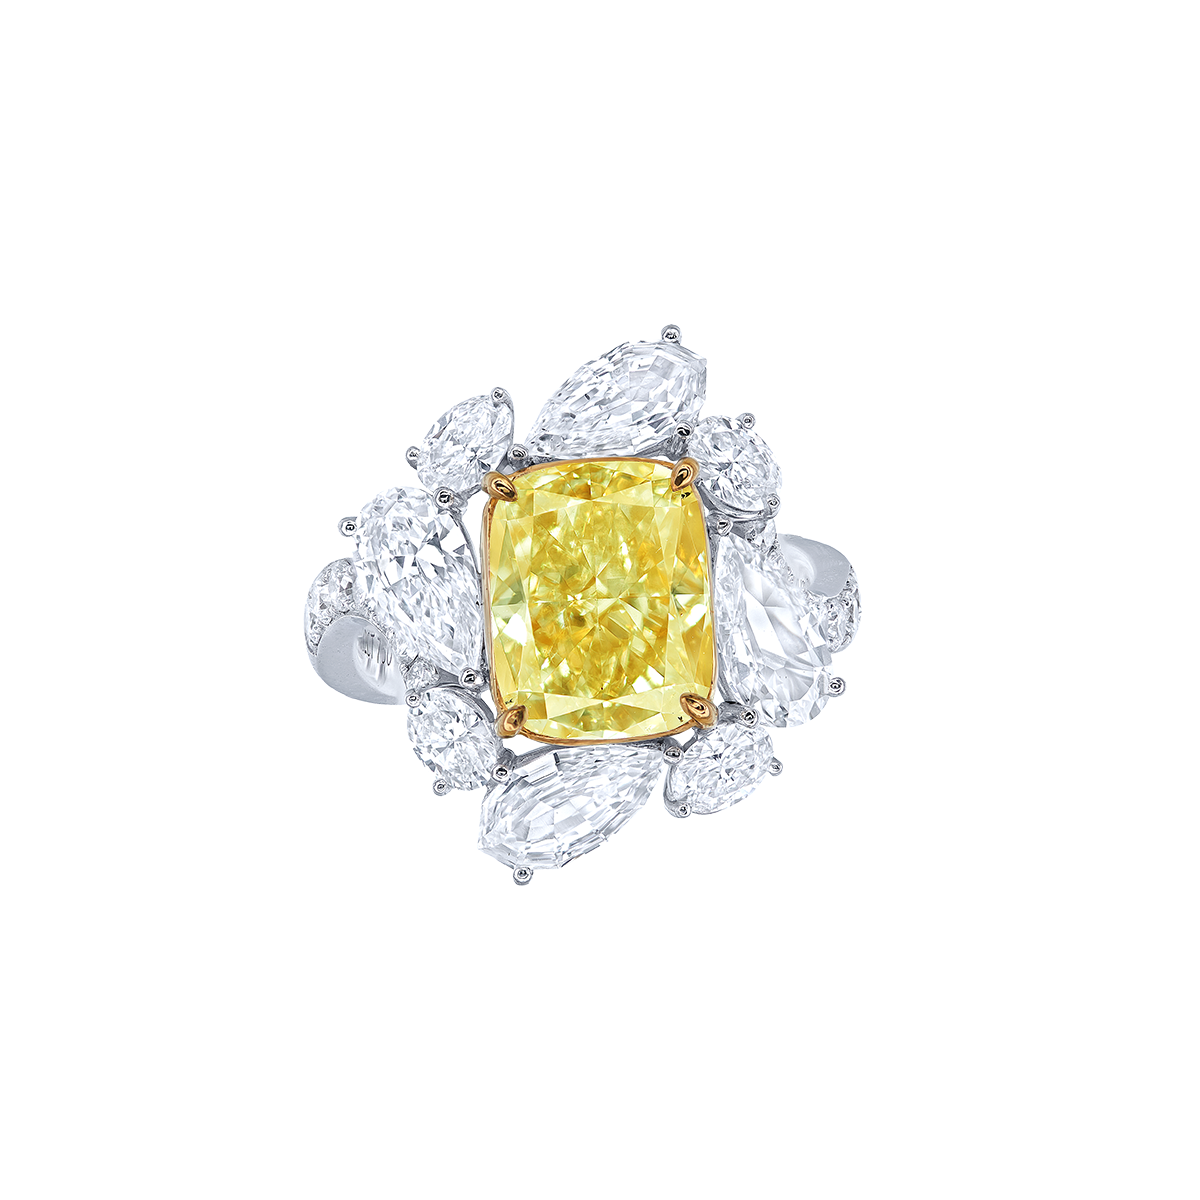 GIA 4.02 克拉 綠黃鑽鑽戒